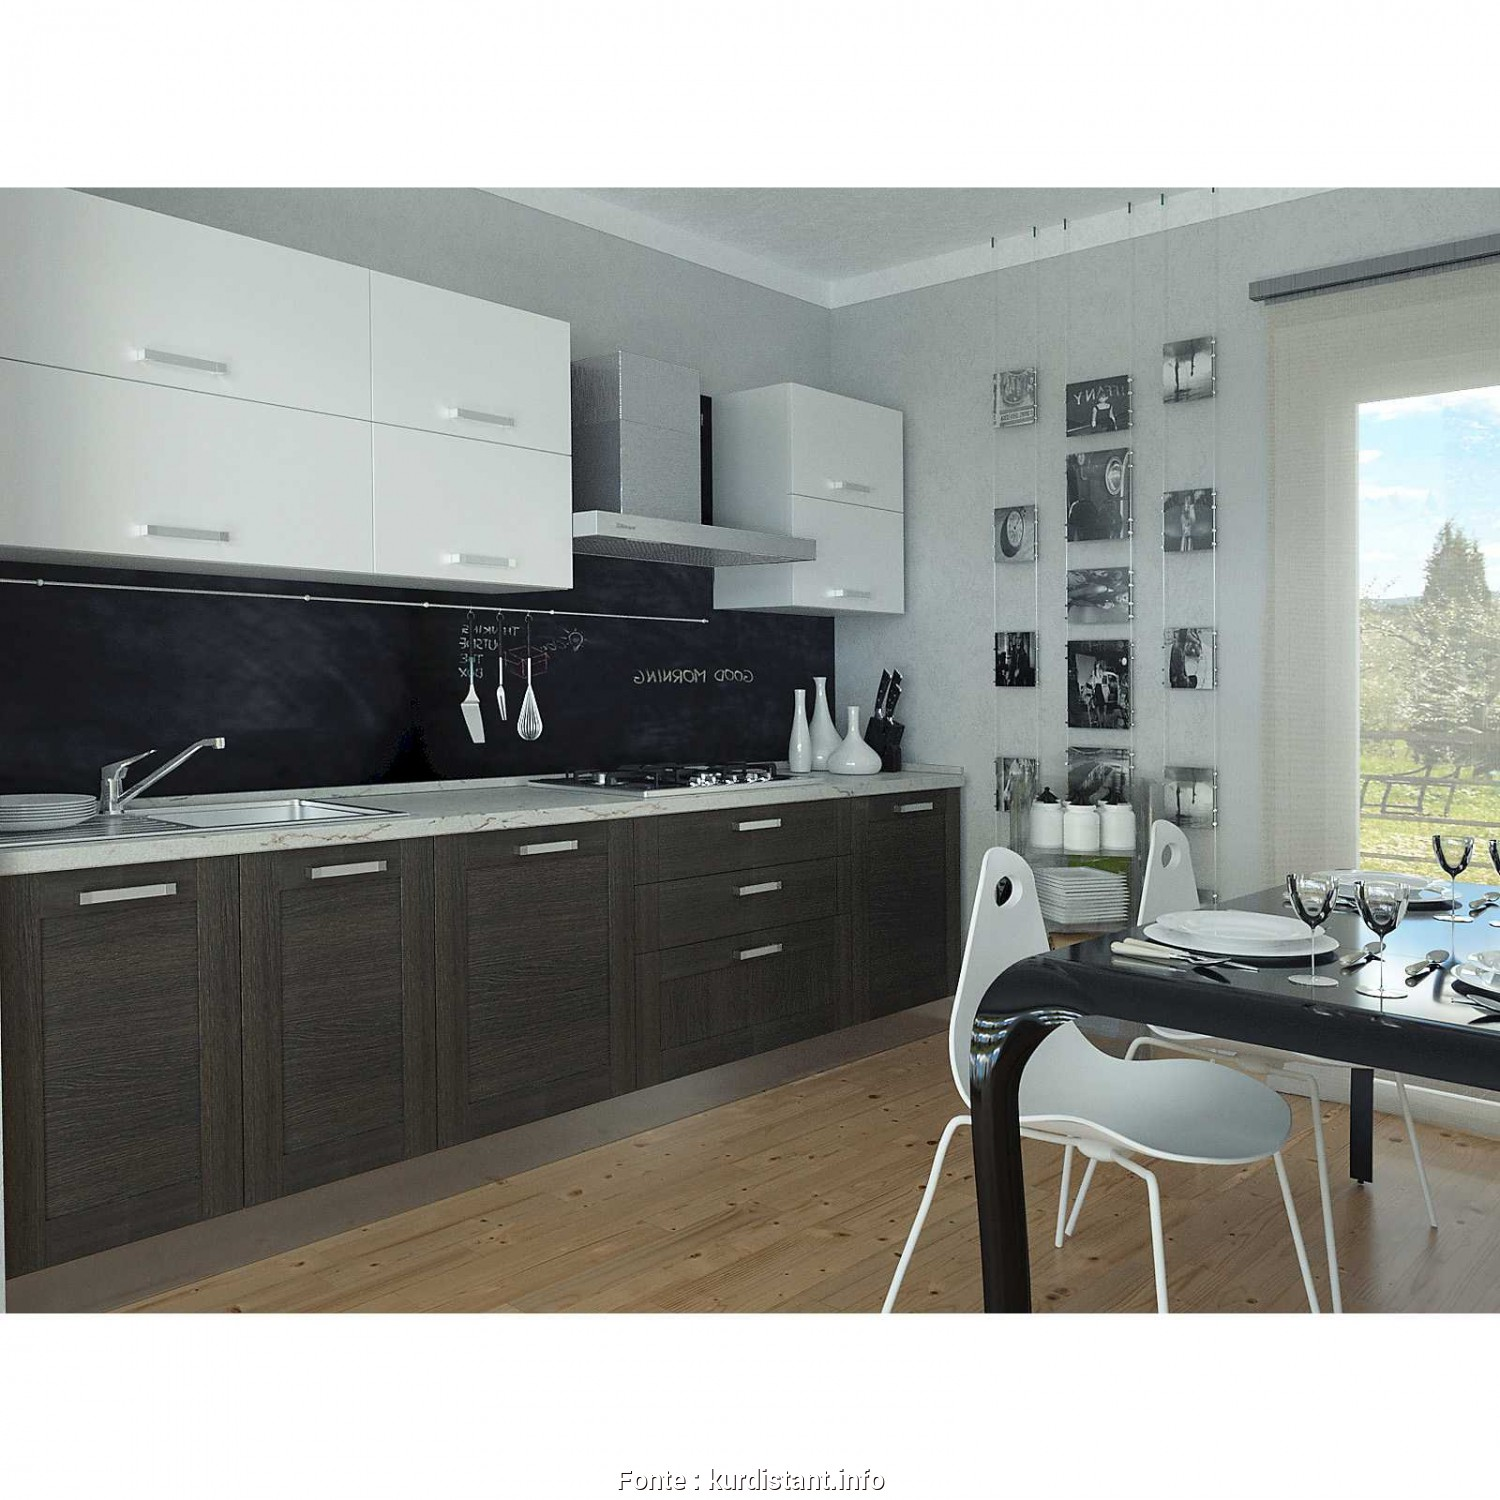 Awesome Progetto Cucina 3d Photos - House Interior - kurdistant.info